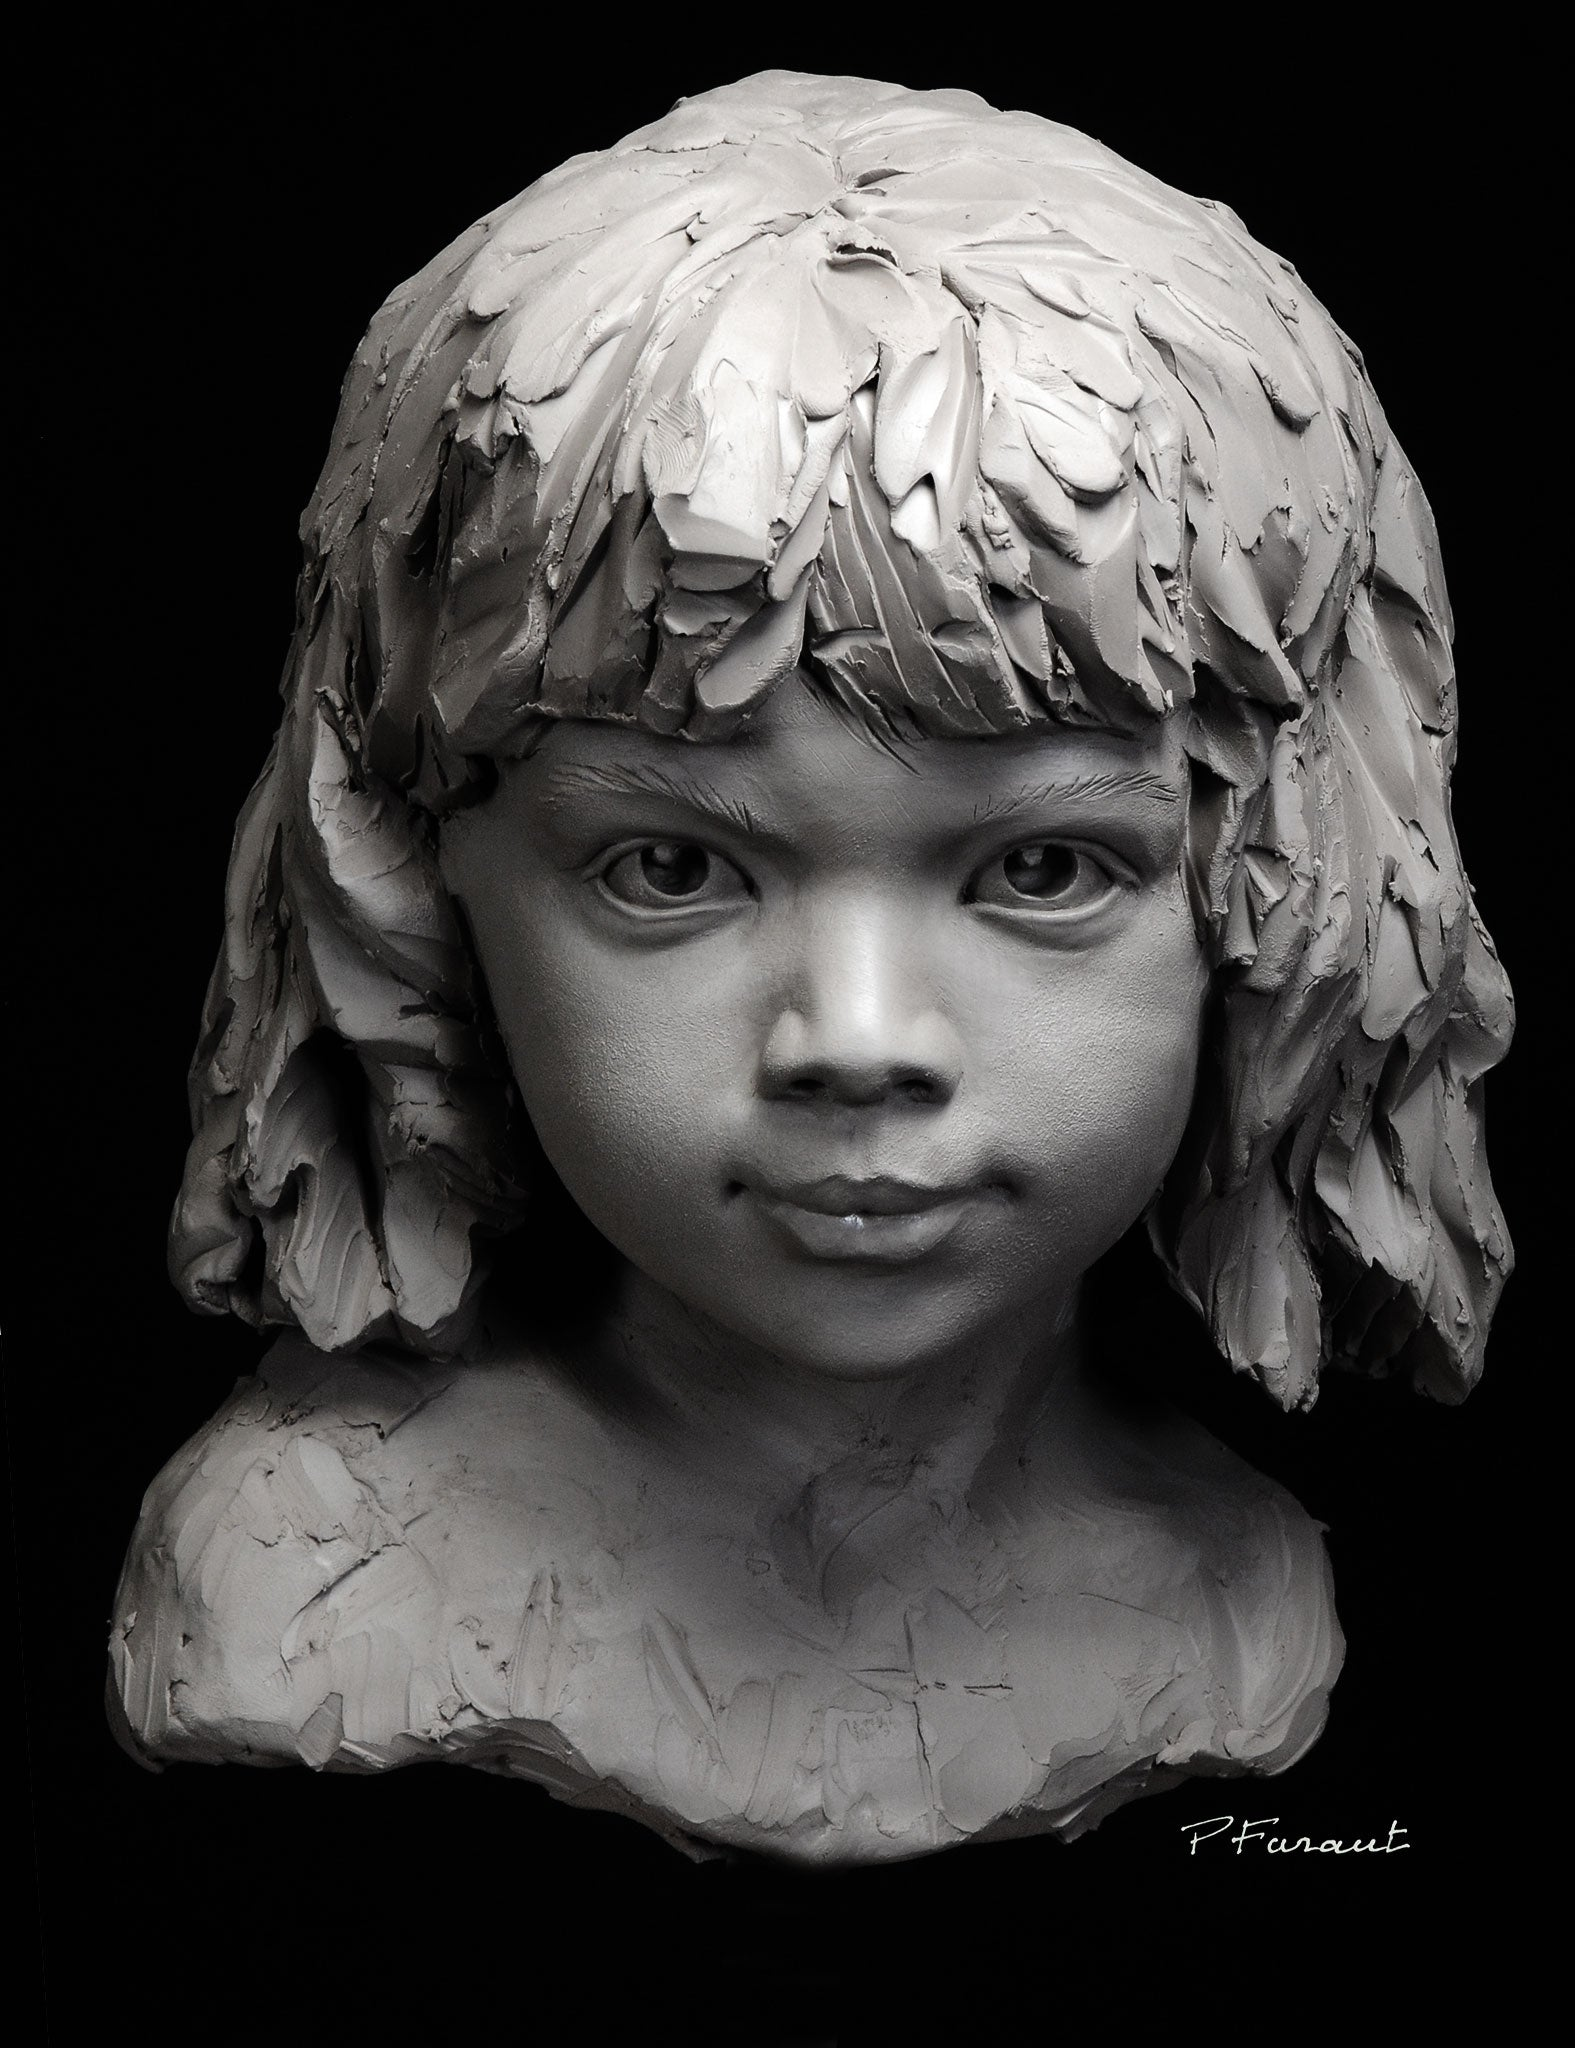 Stylized clay portrait sculpture of a little girl by artist Philippe Faraut